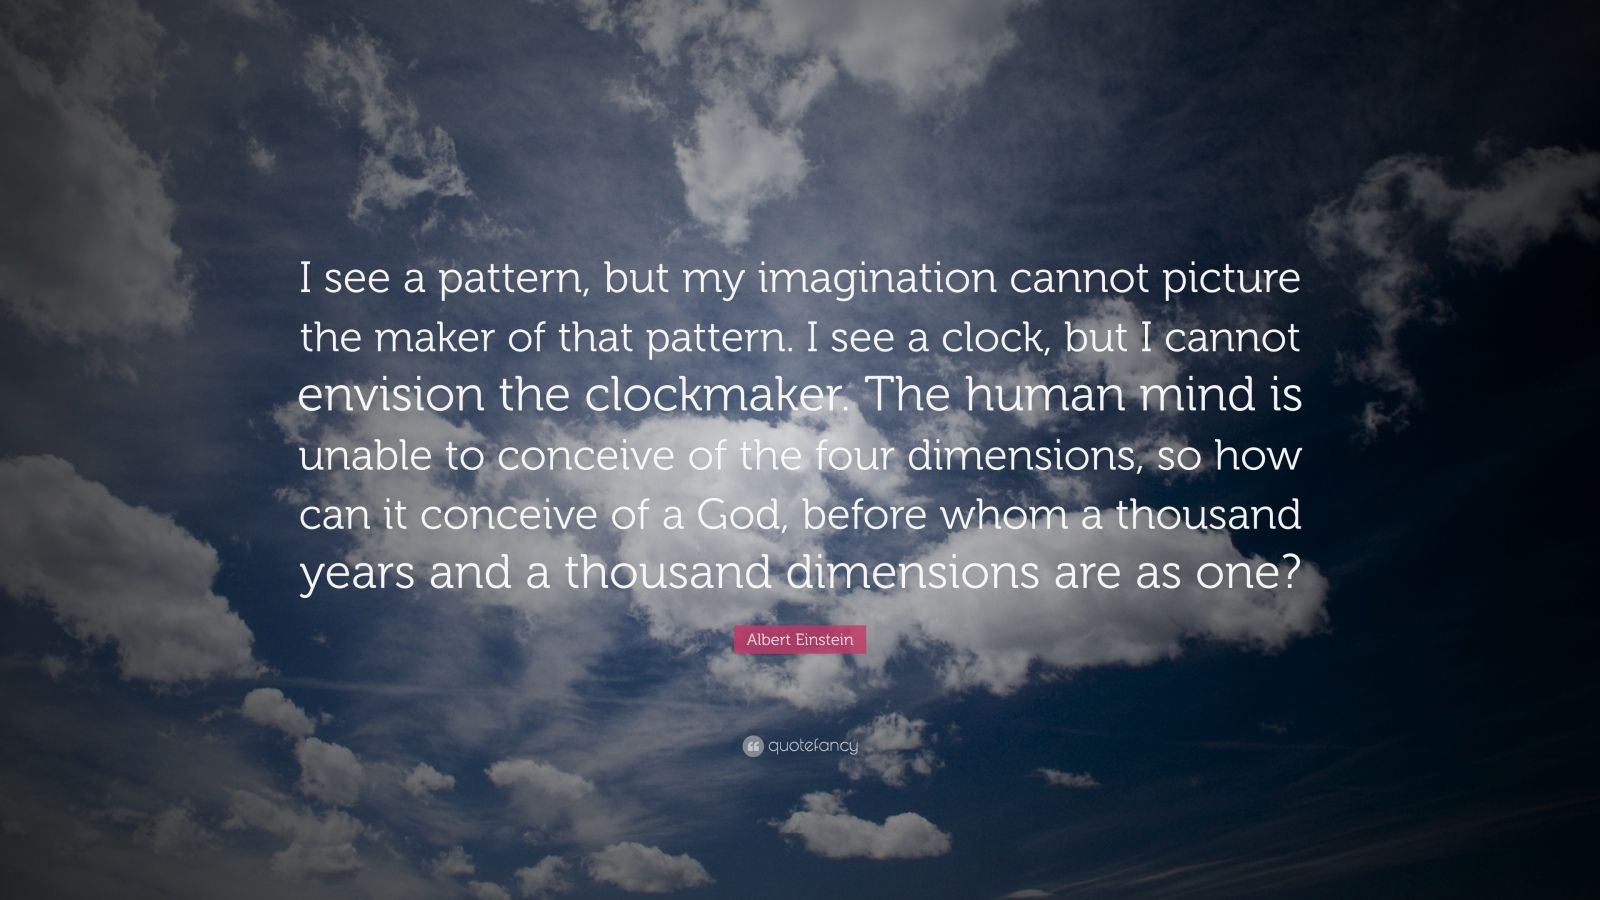 "Albert Einstein Quote: ""I see a pattern, but my imagination cannot picture the maker of that pattern. I see a clock, but I cannot envision the clockmaker. The human mind is unable to conceive of the four dimensions, so how can it conceive of a God, before whom a thousand years and a thousand dimensions are as one?"""